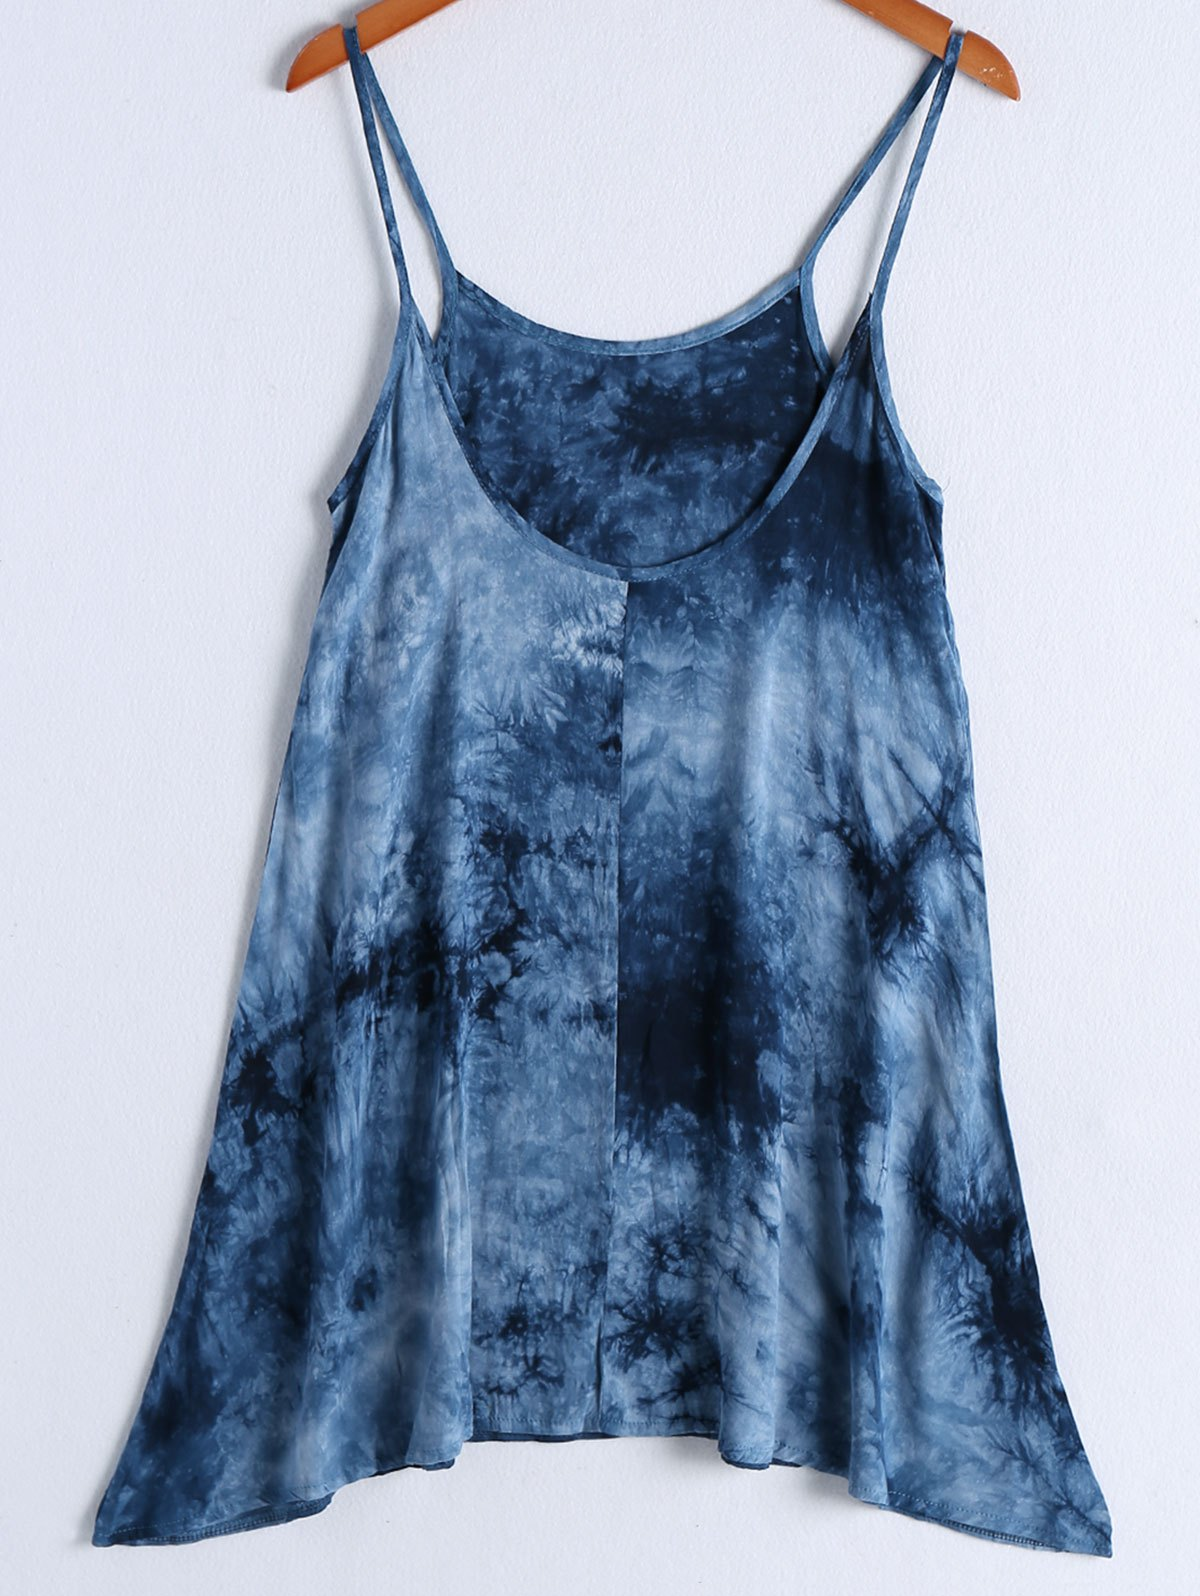 Casual Women's Spaghetti Strap Tie Dye Knee Length Dress - BLUE 2XL